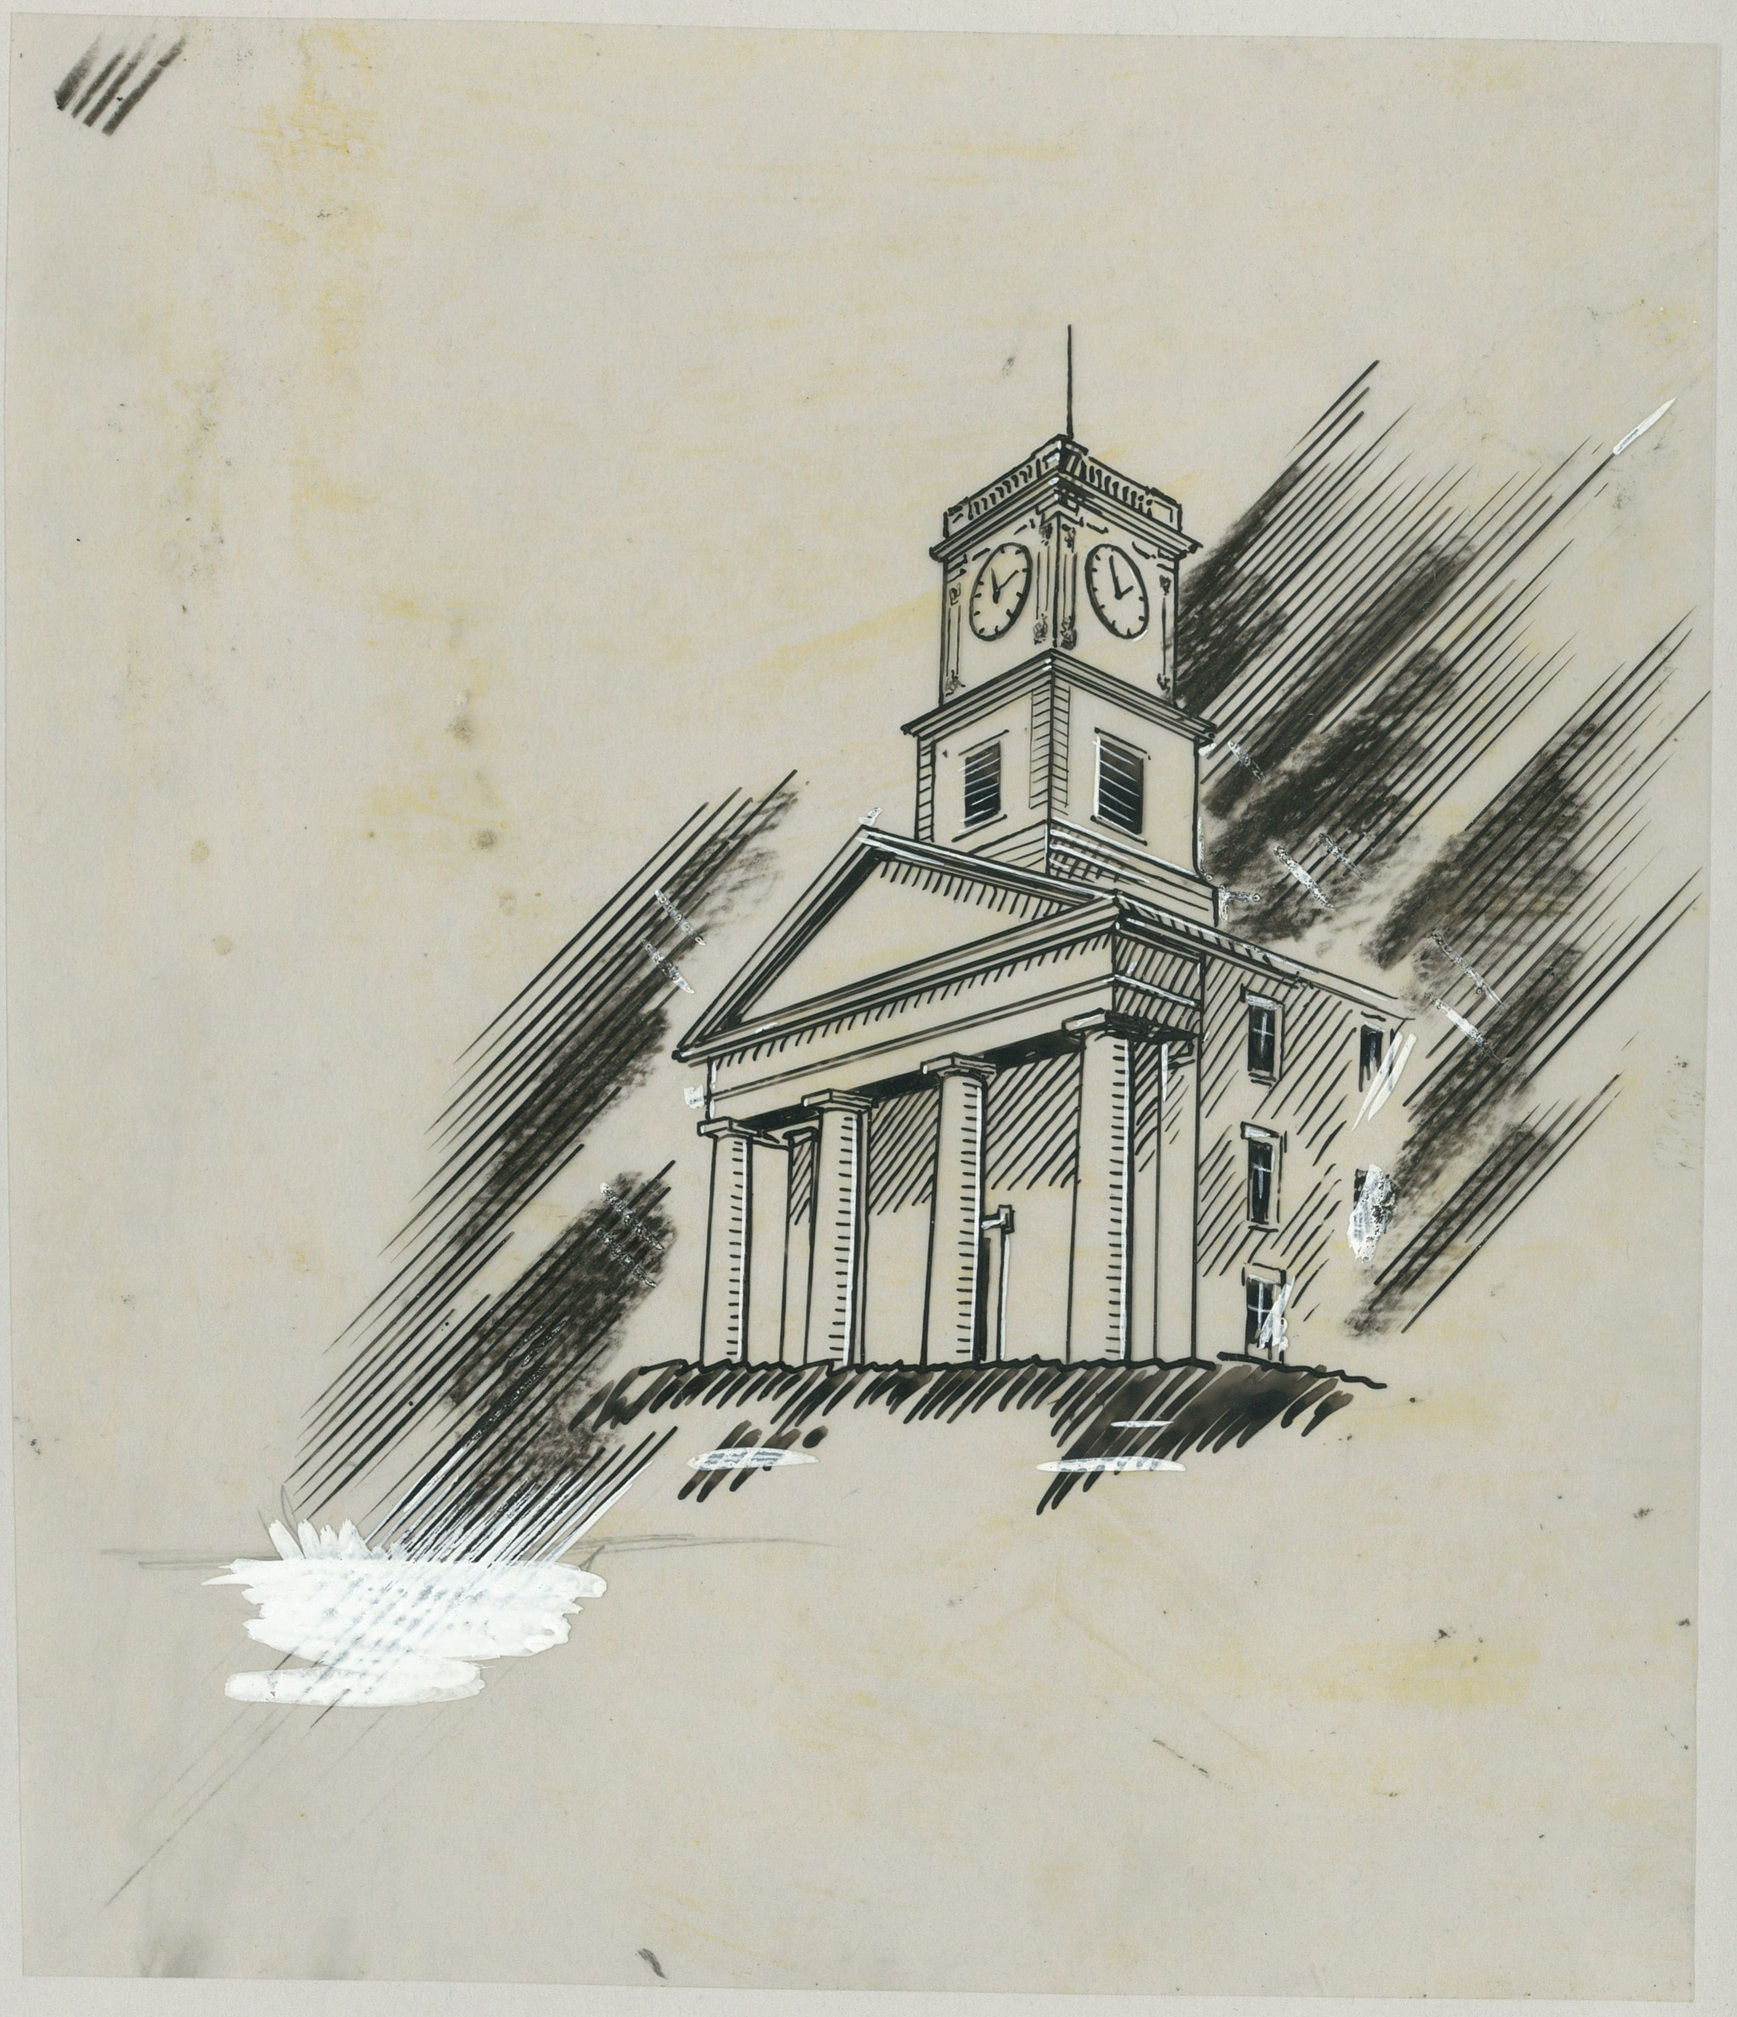 A chapel building with four columns and a square clock tower. Diagonal lines shade the background.